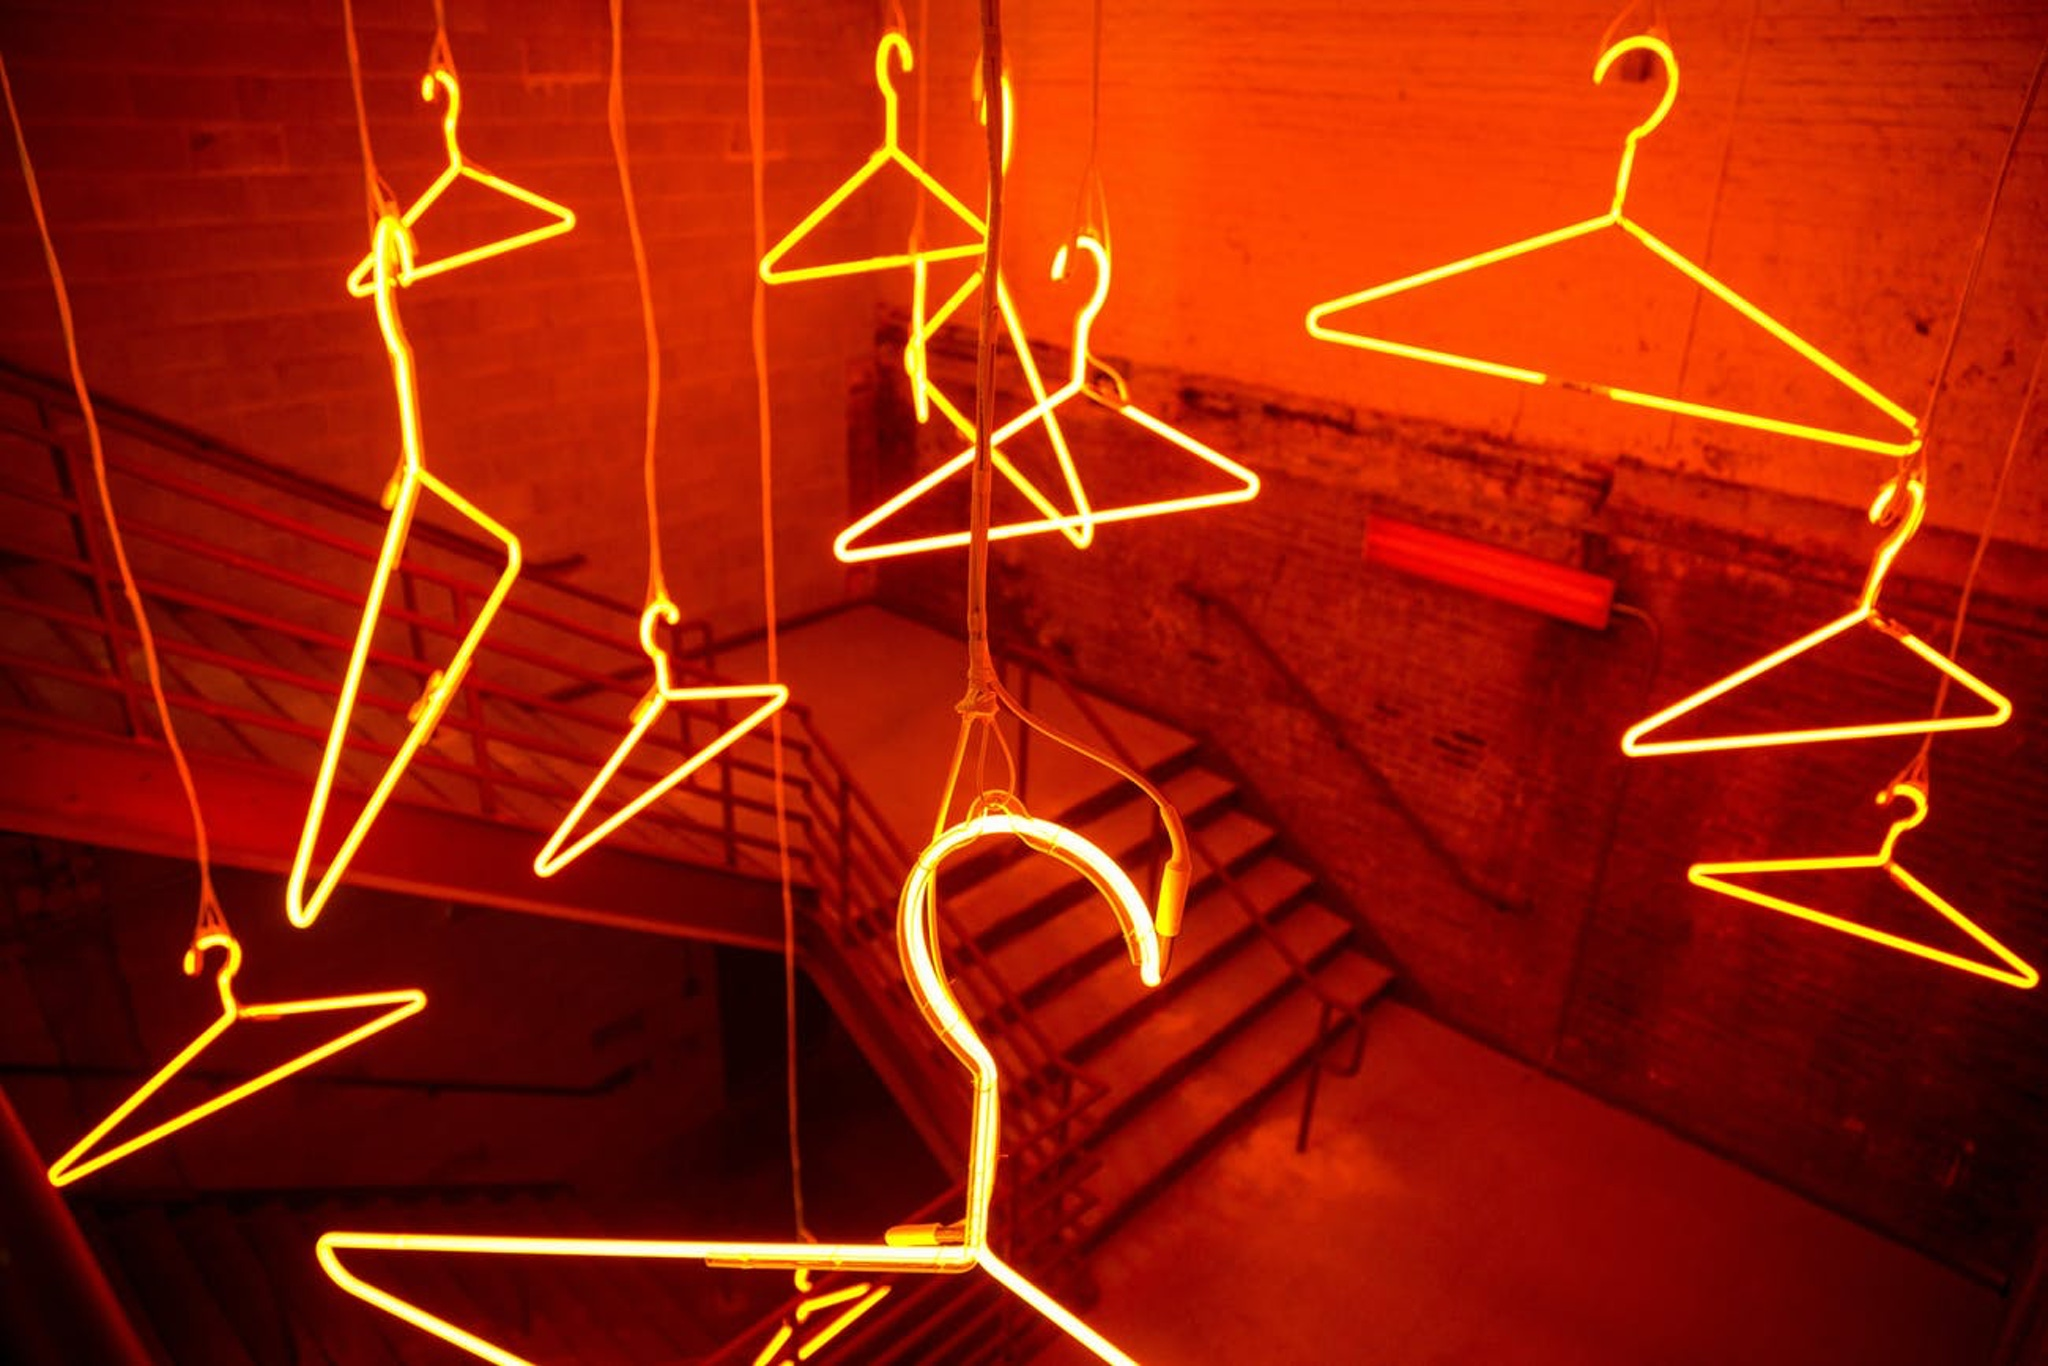 Hermés Chicago event with glowing orange hangers hanging from the ceiling